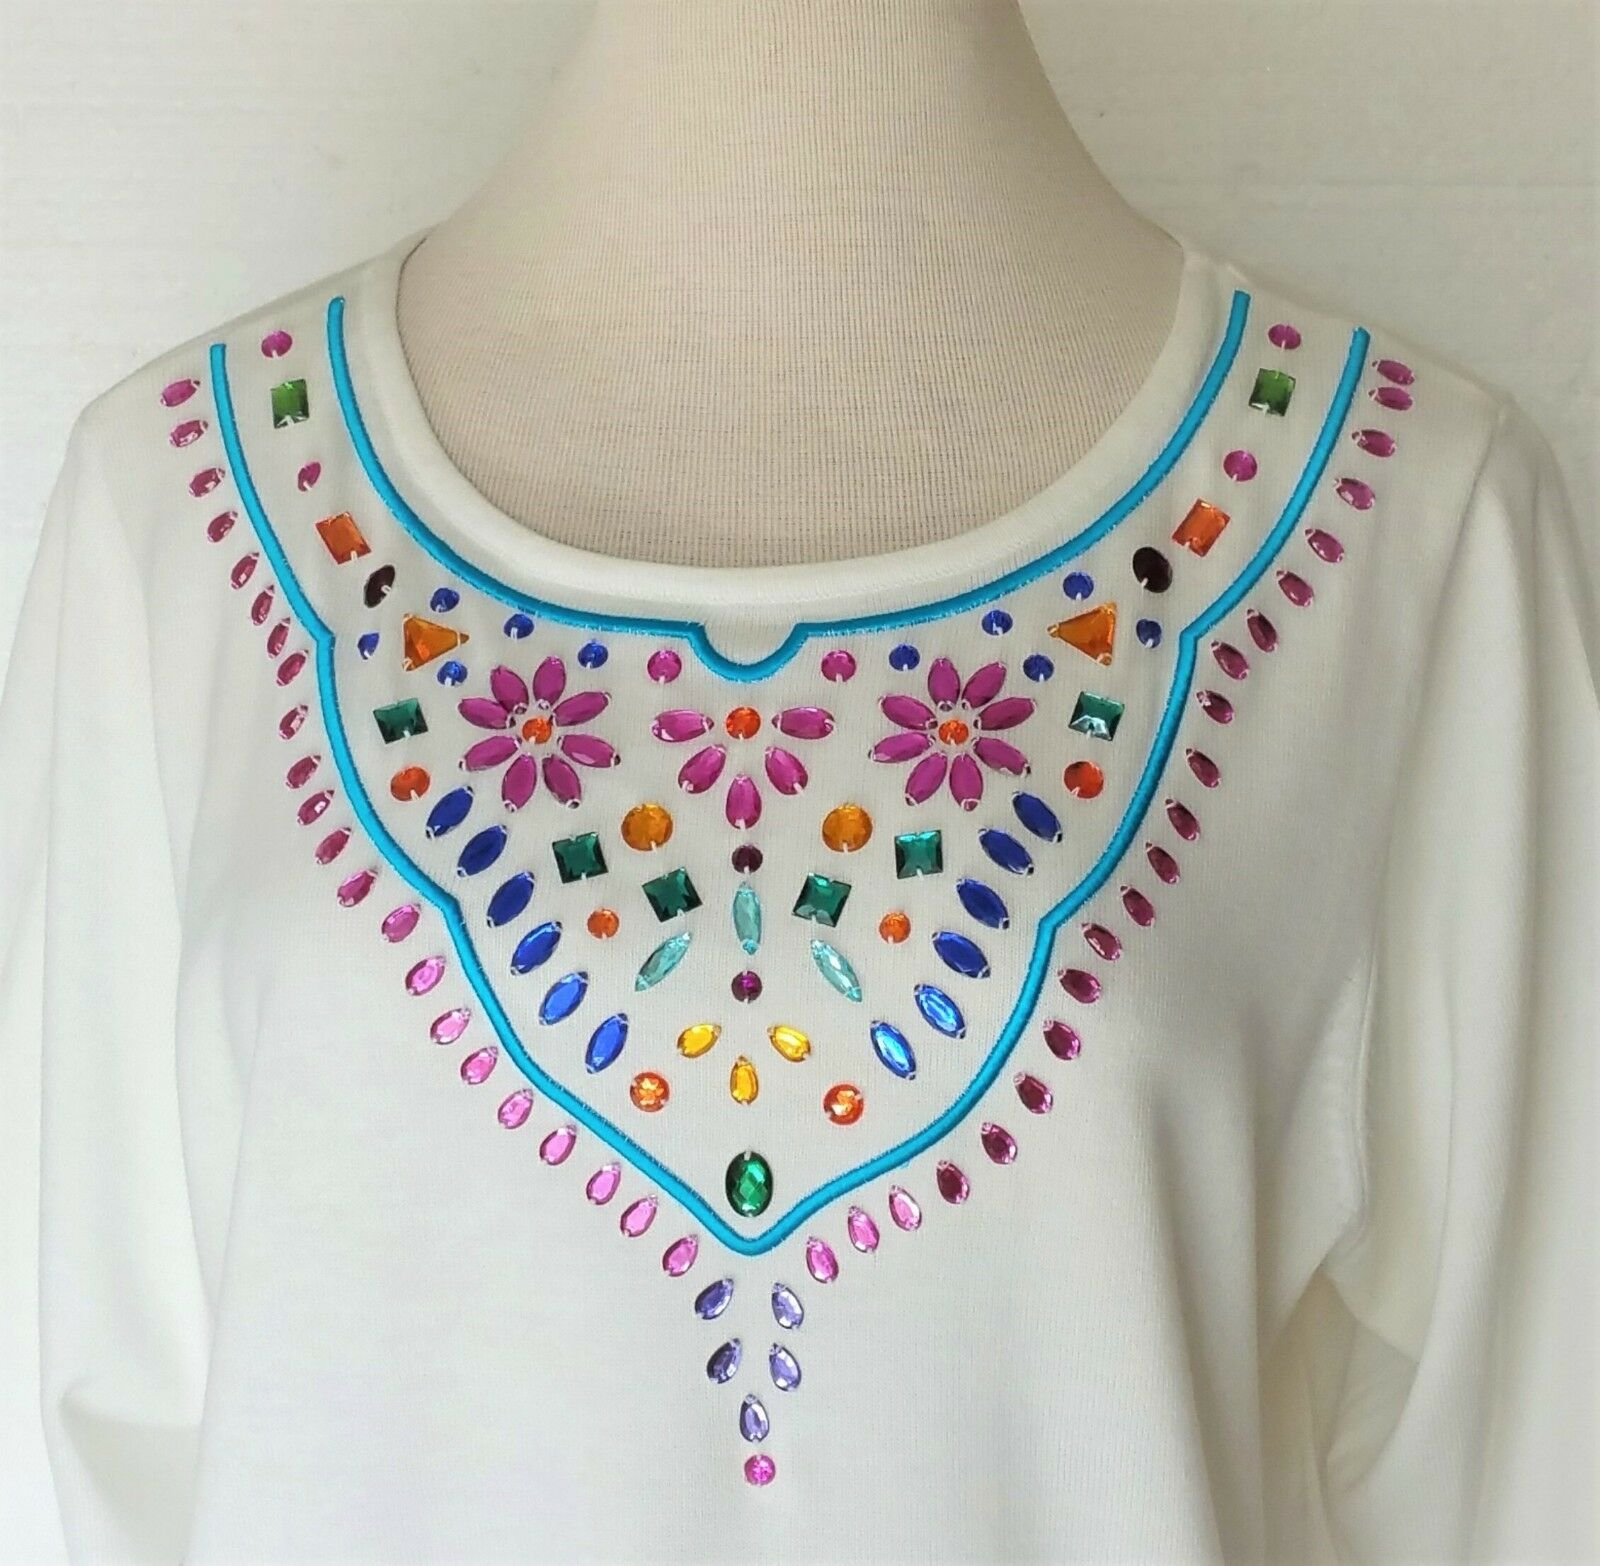 Louis Dell'Olio Linea Blouse Top NEW Off-White Knit Embroidery & Rhinestones 2X